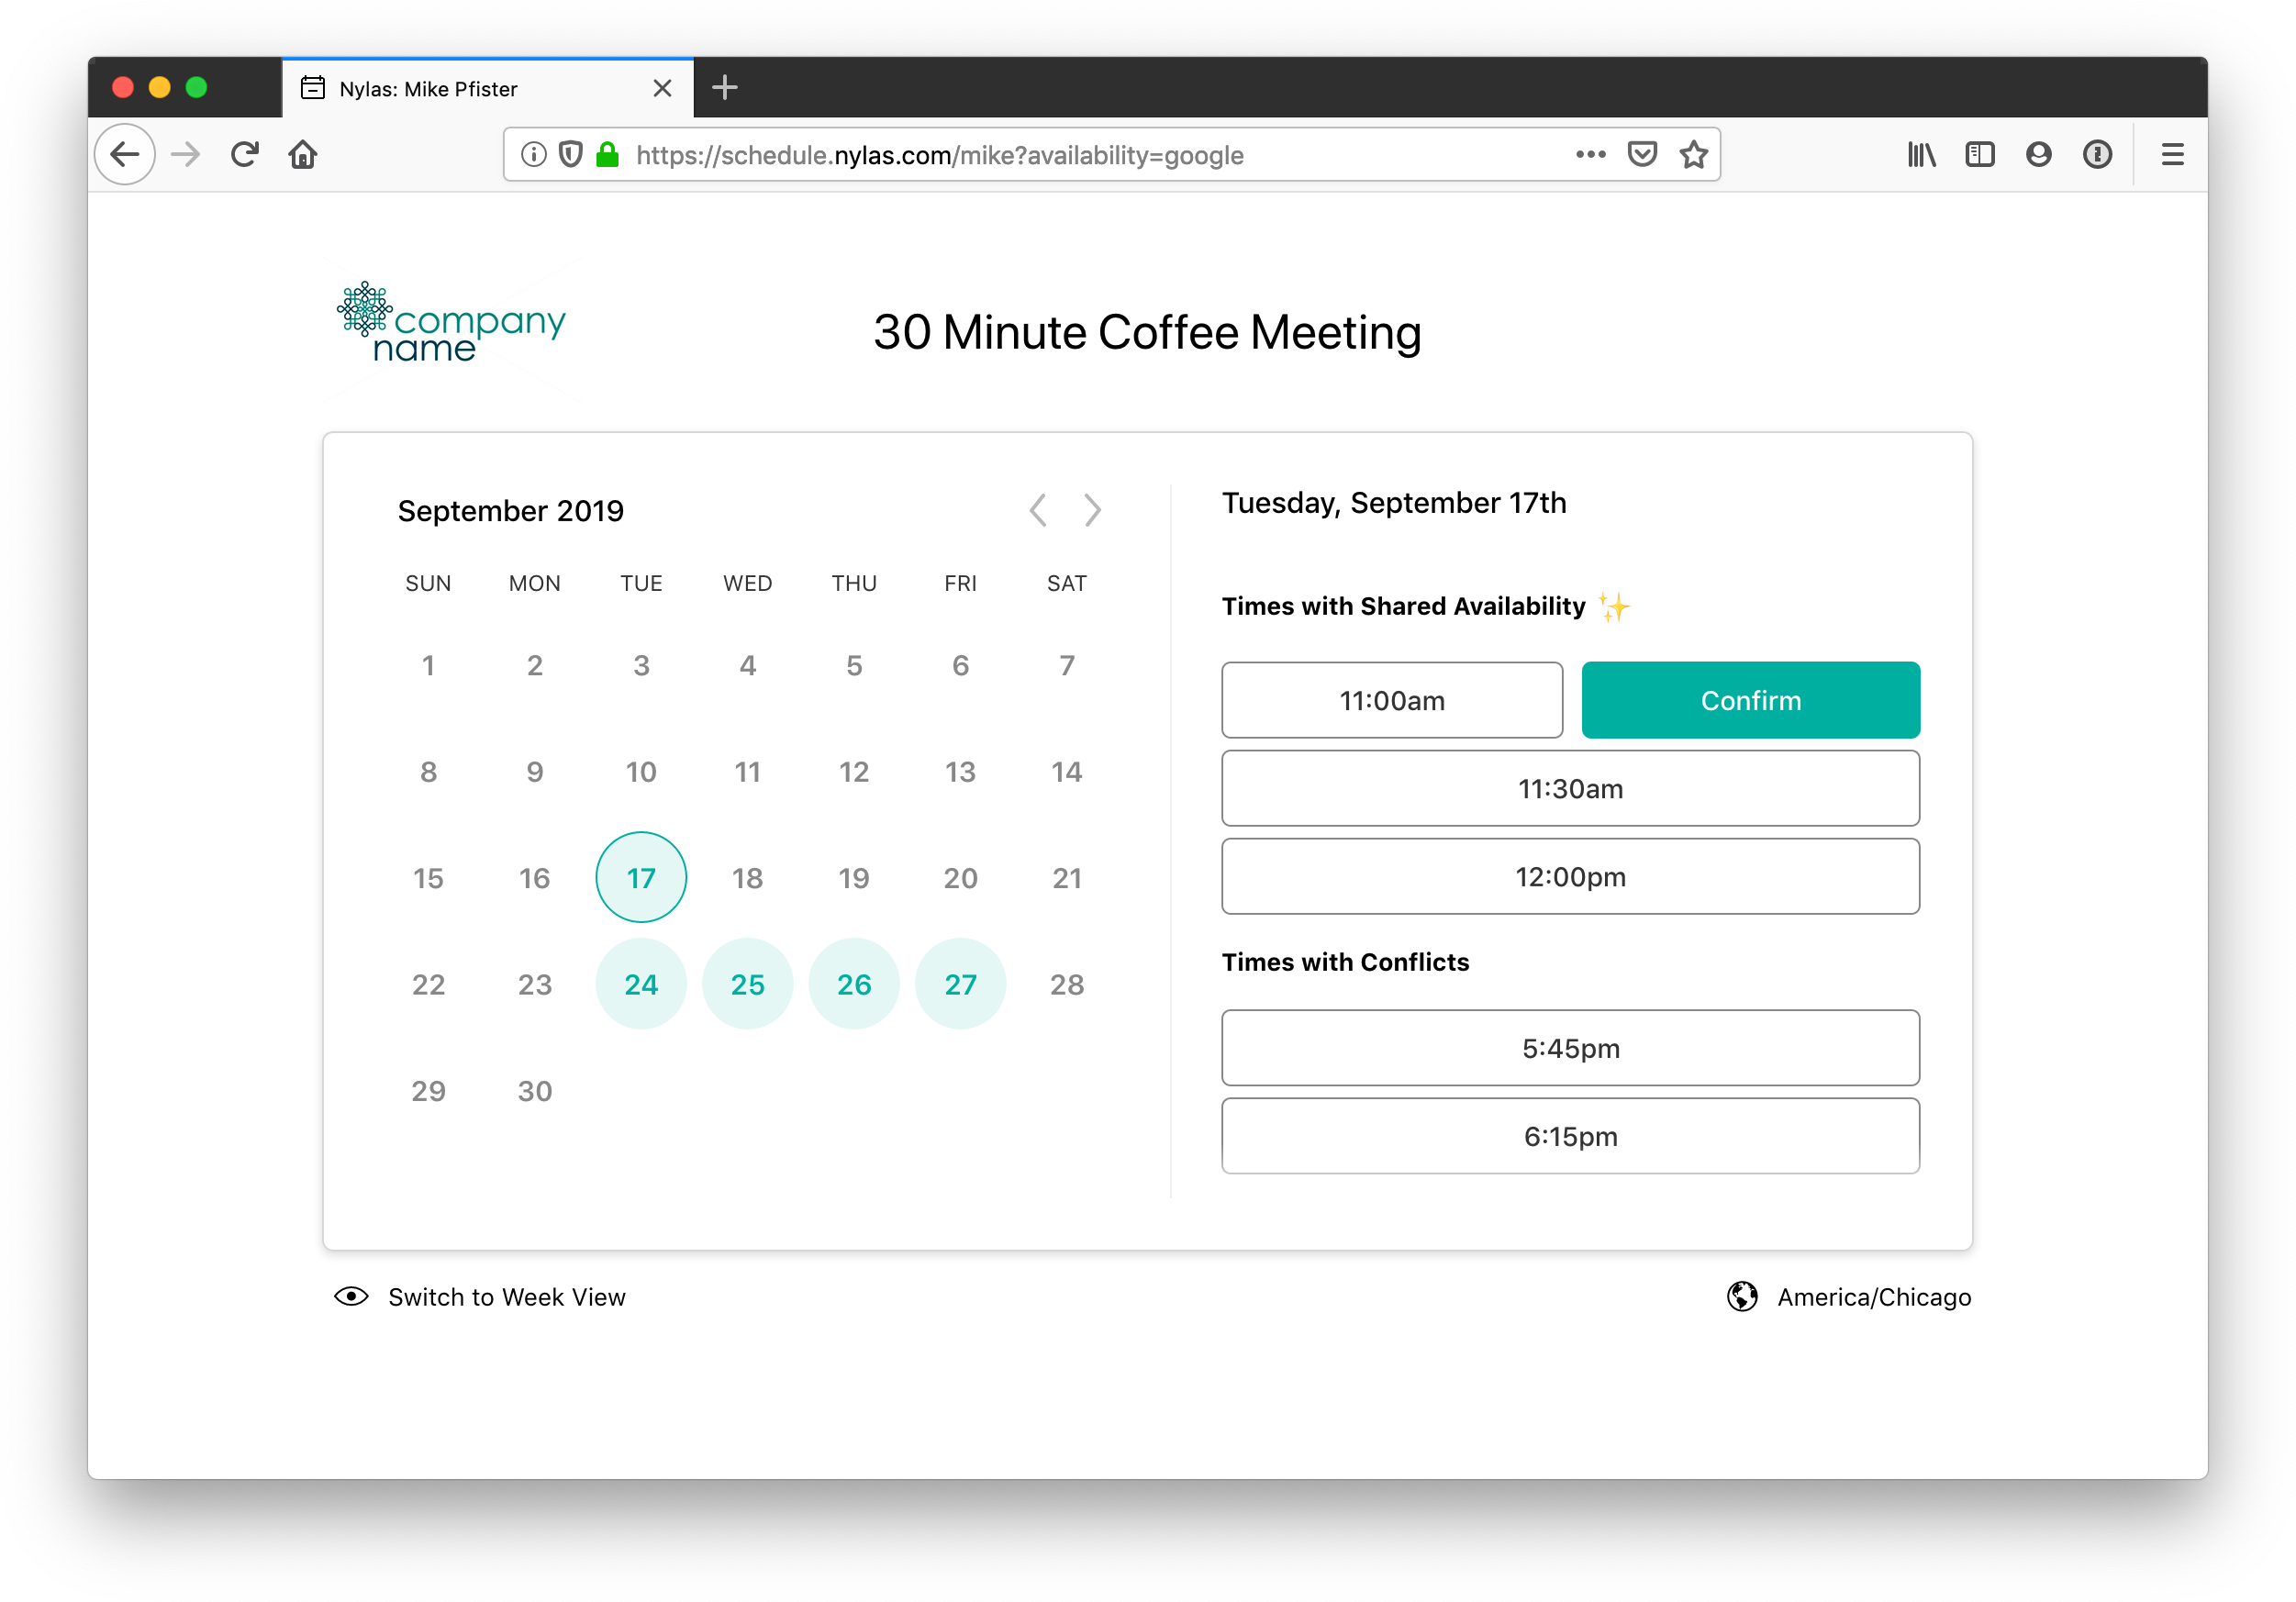 An example scheduling page that has been customized with a company logo and color scheme.